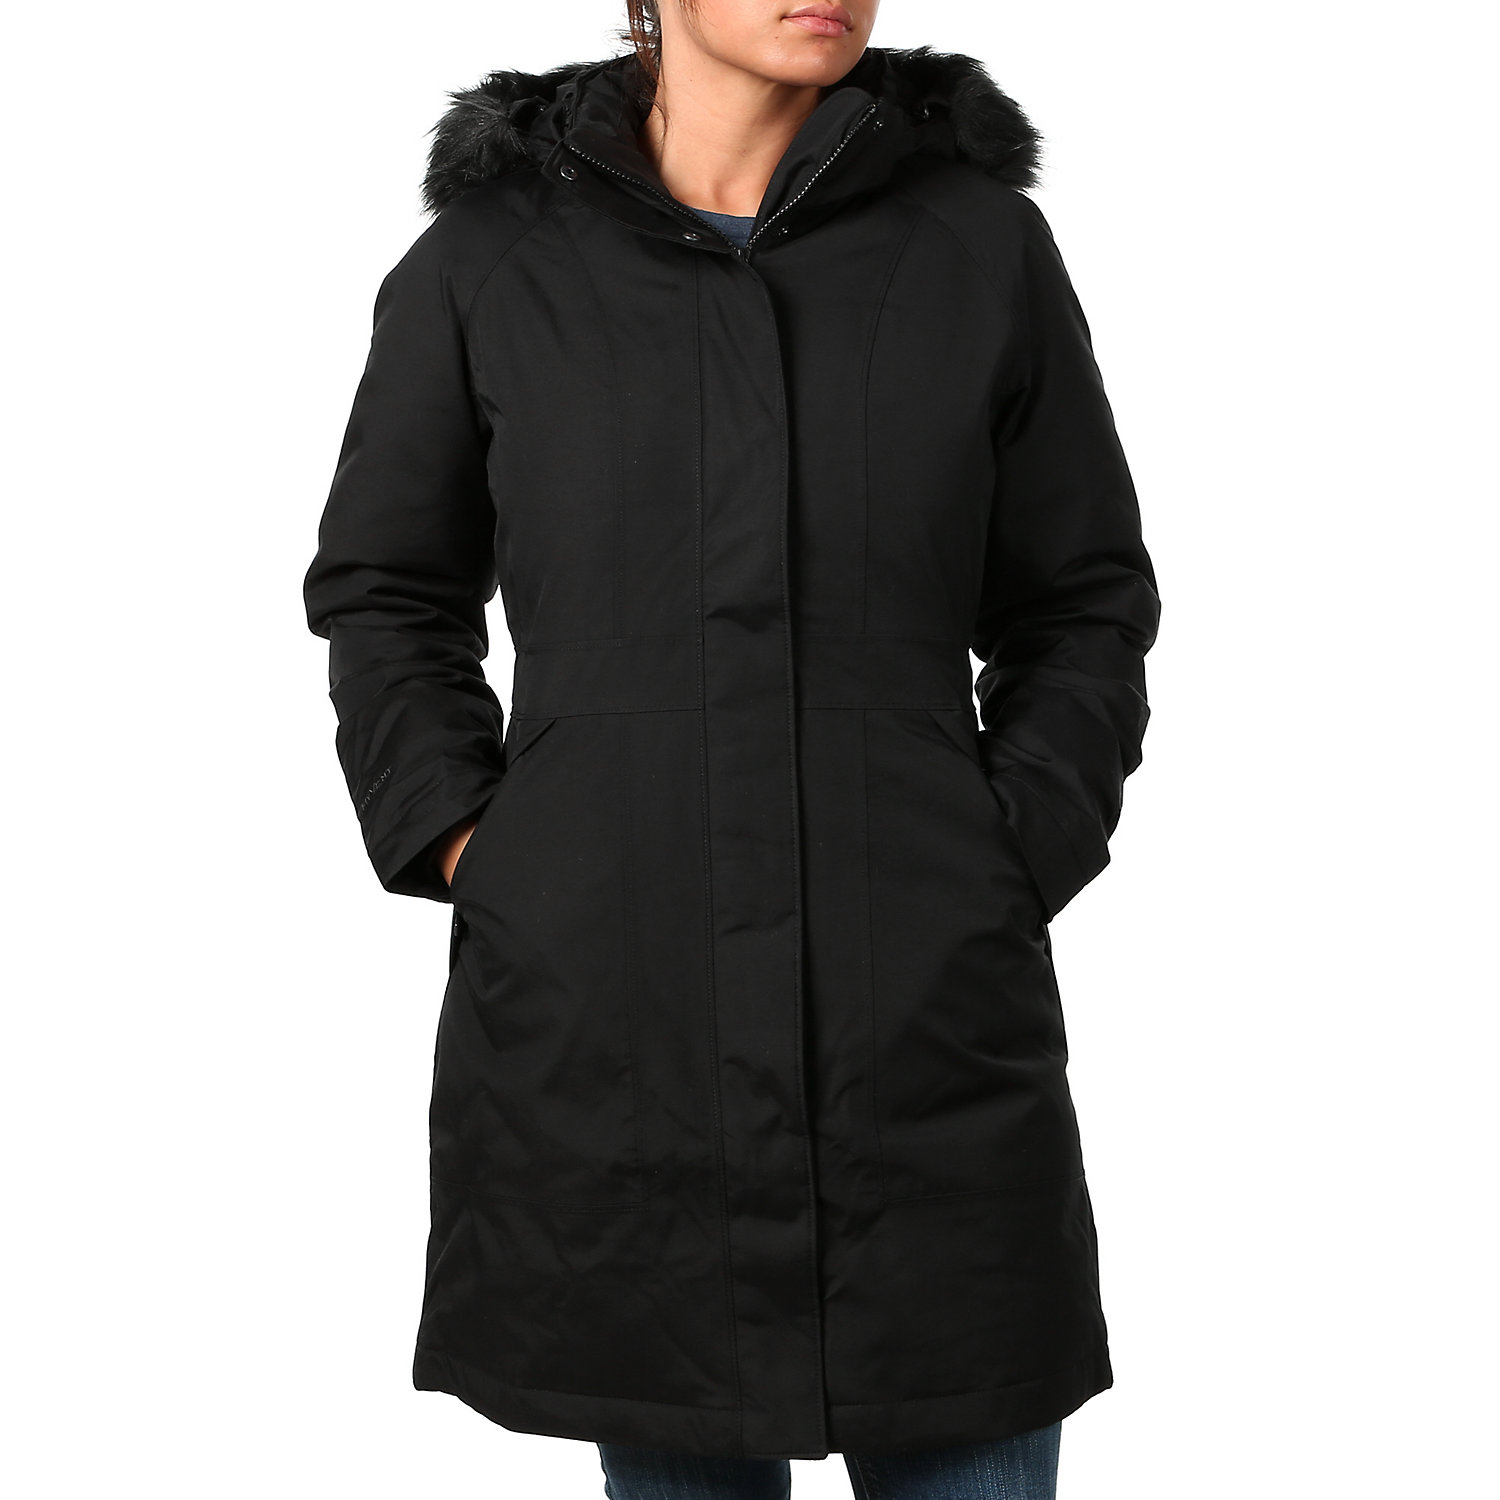 c7f71863b The North Face Women's Arctic Down Parka